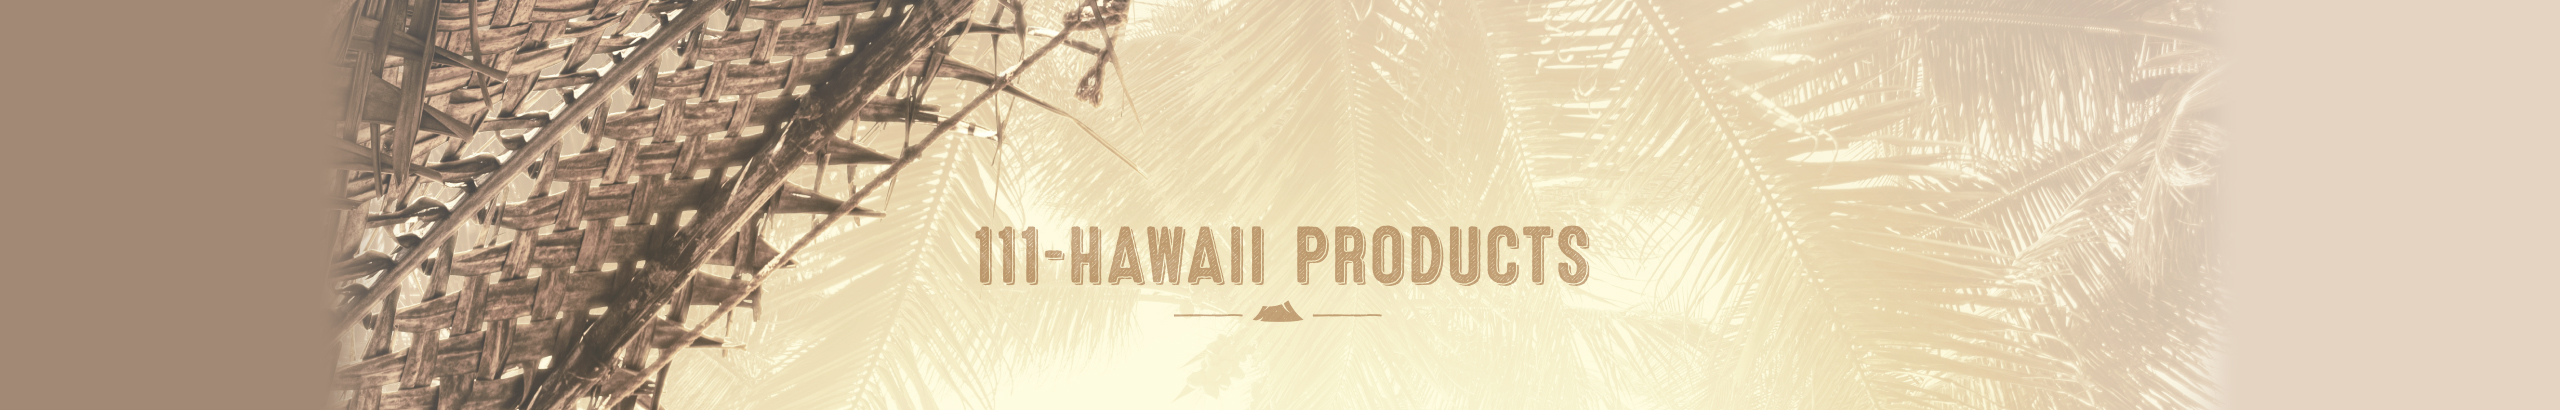 New branding on made in Hawaii gifts